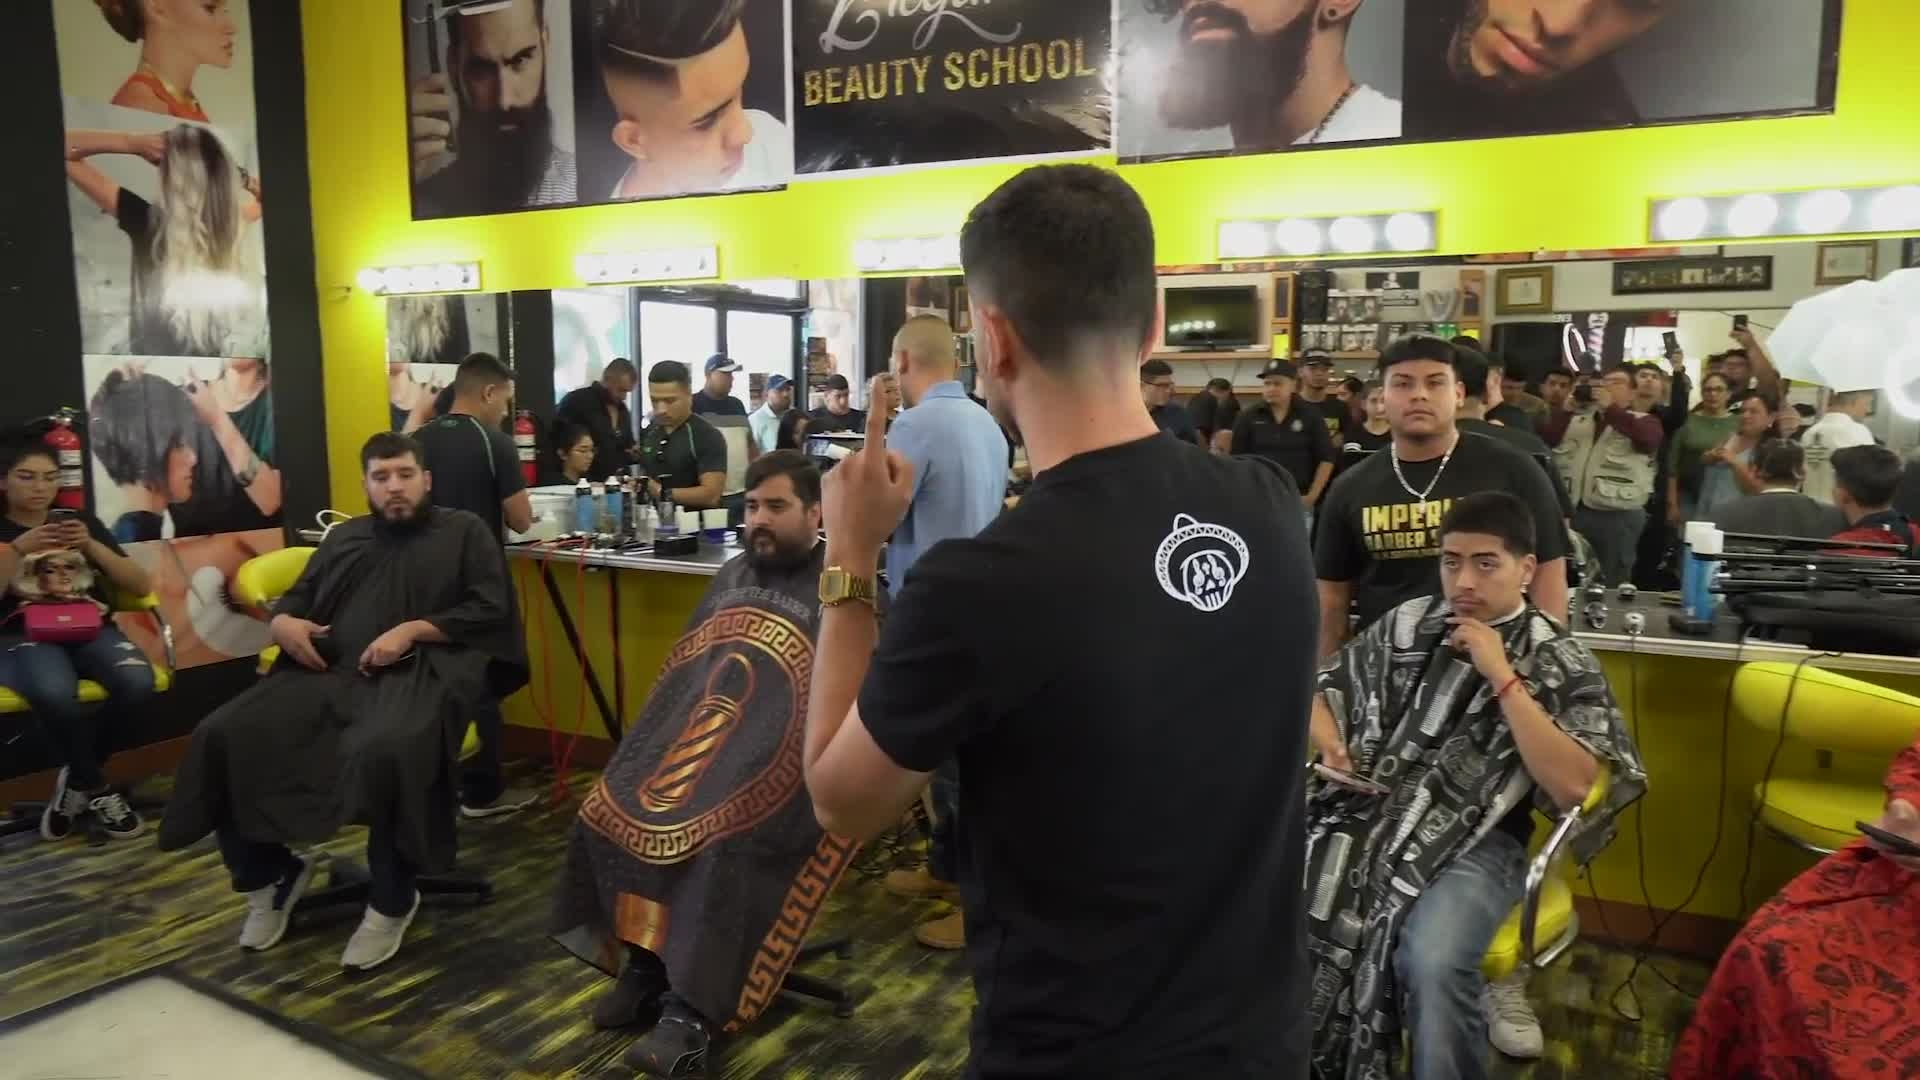 Barber Battle 2019! Your event is special